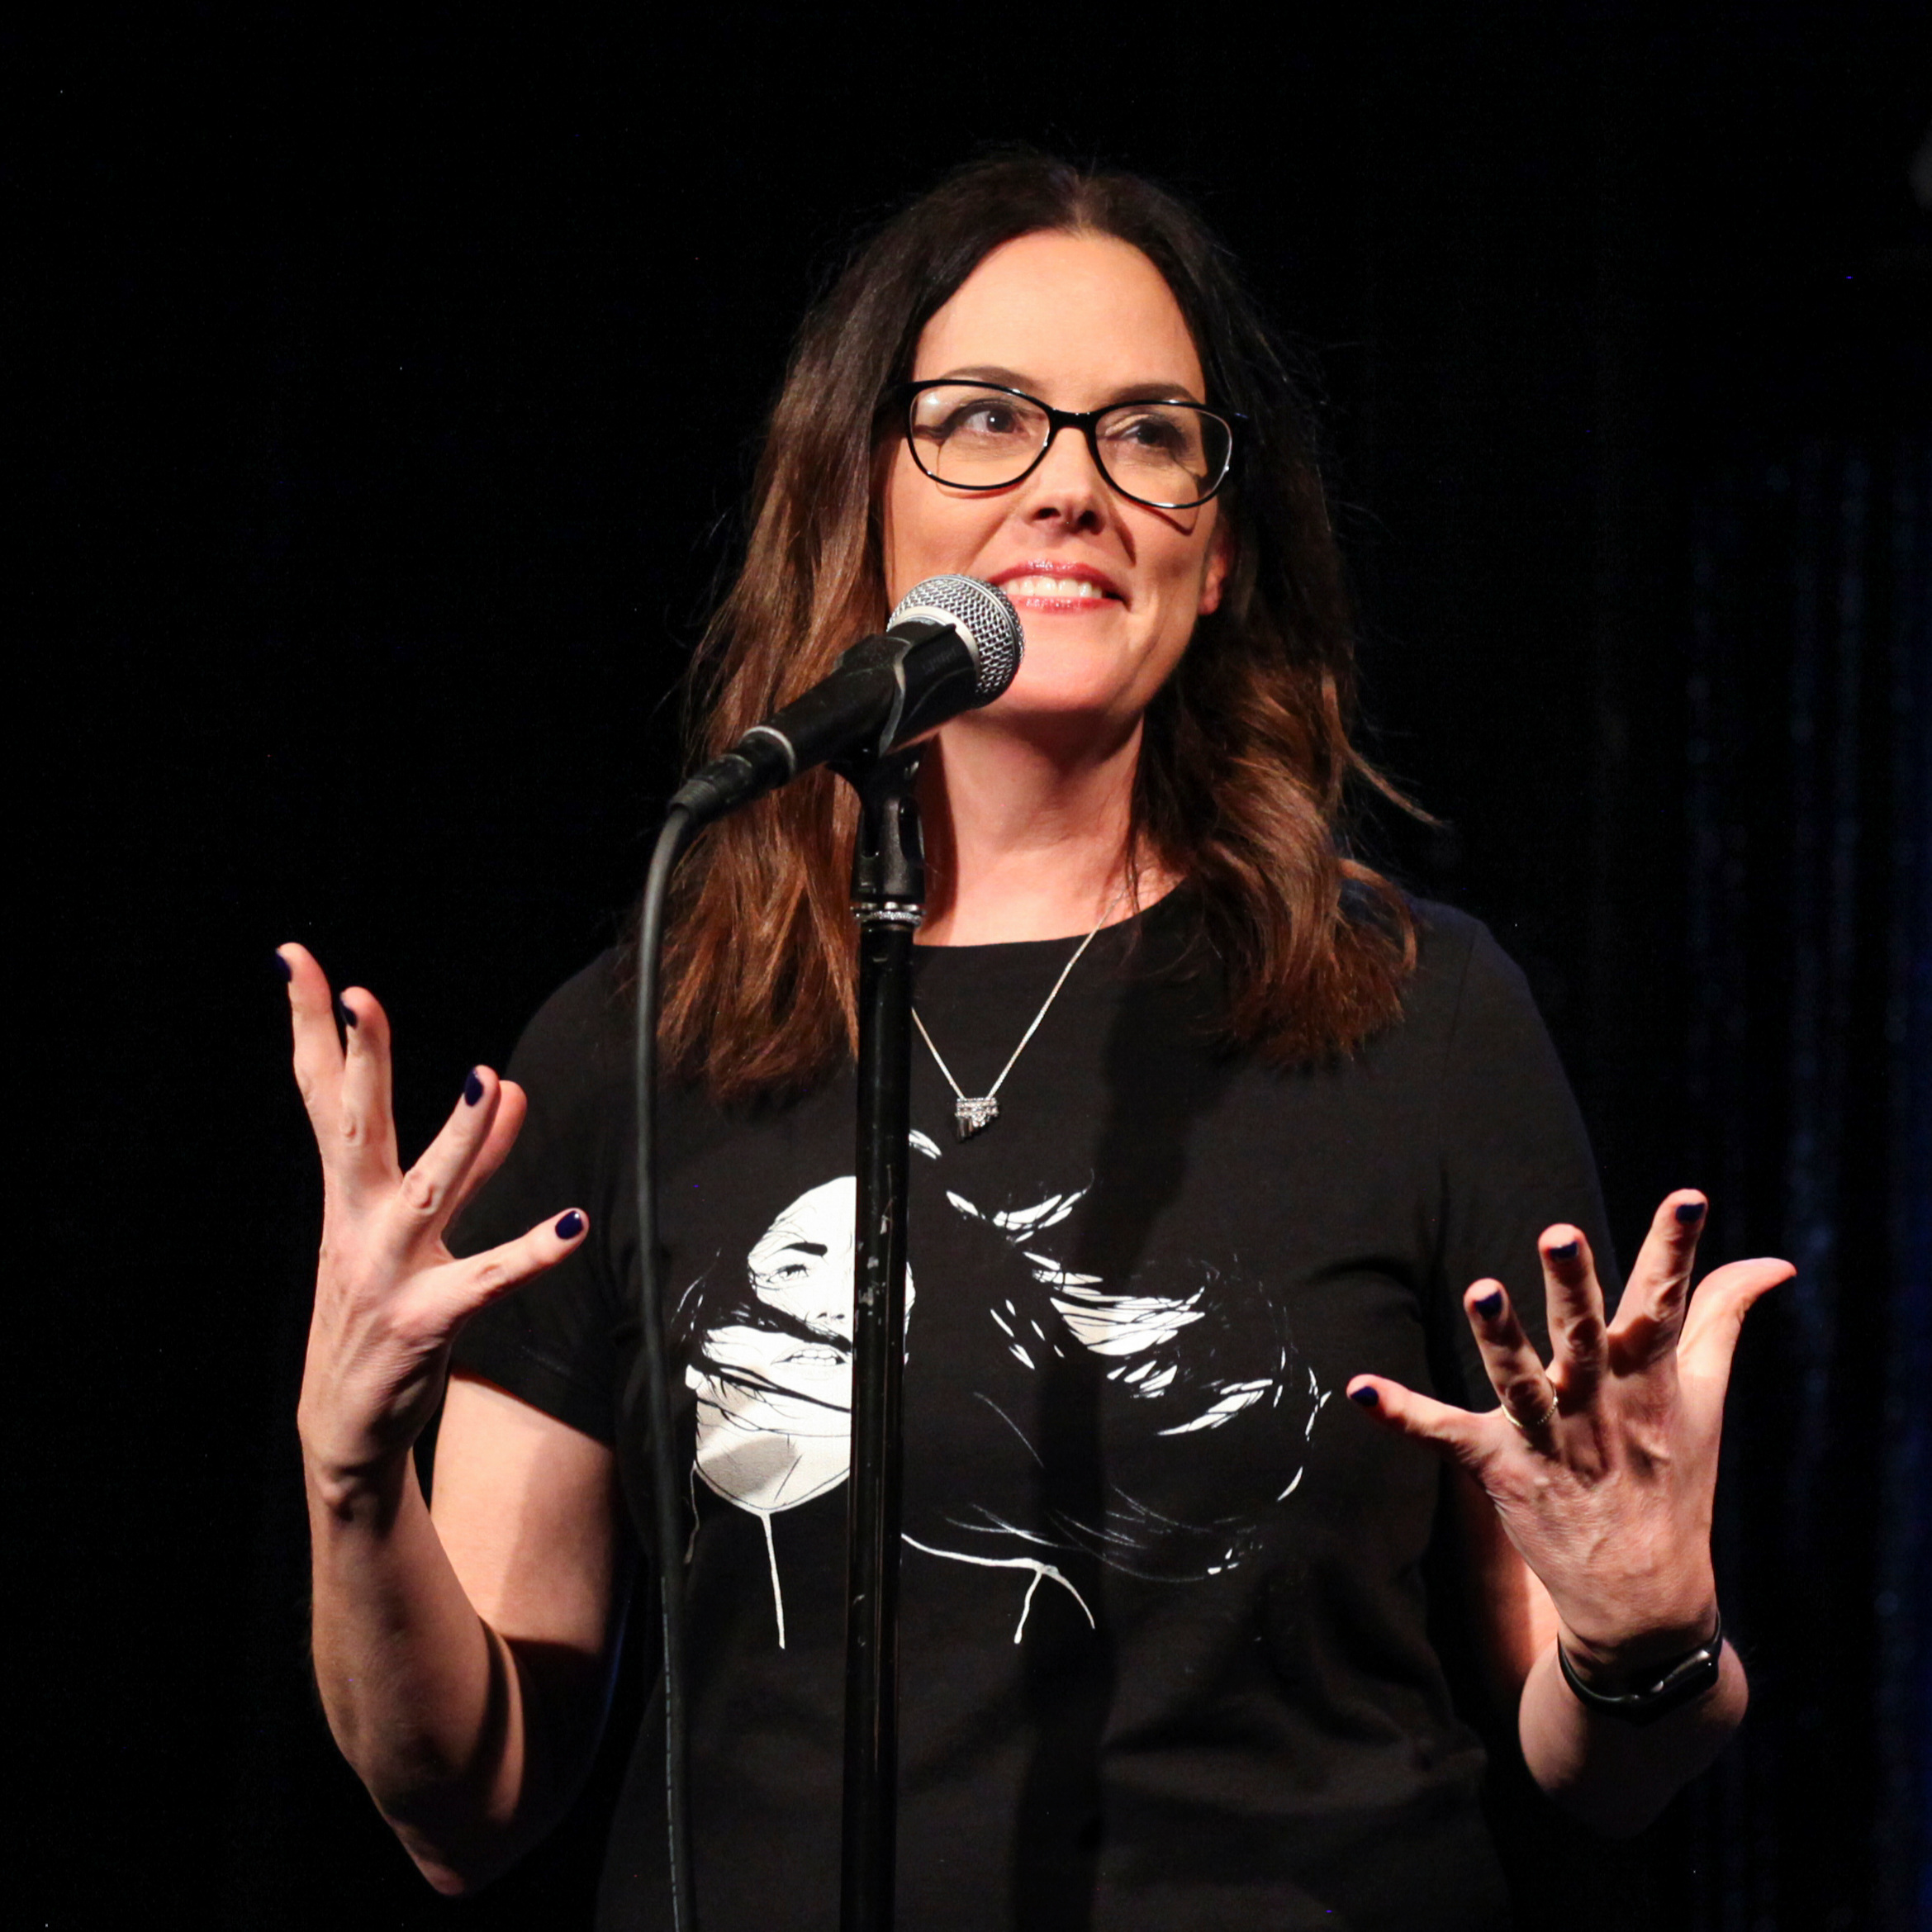 Audrey Kearns shares her story with the Story Collider audience at Lyric Hyperion in Los Angeles in February 2019. Photo by Mari Provencher.